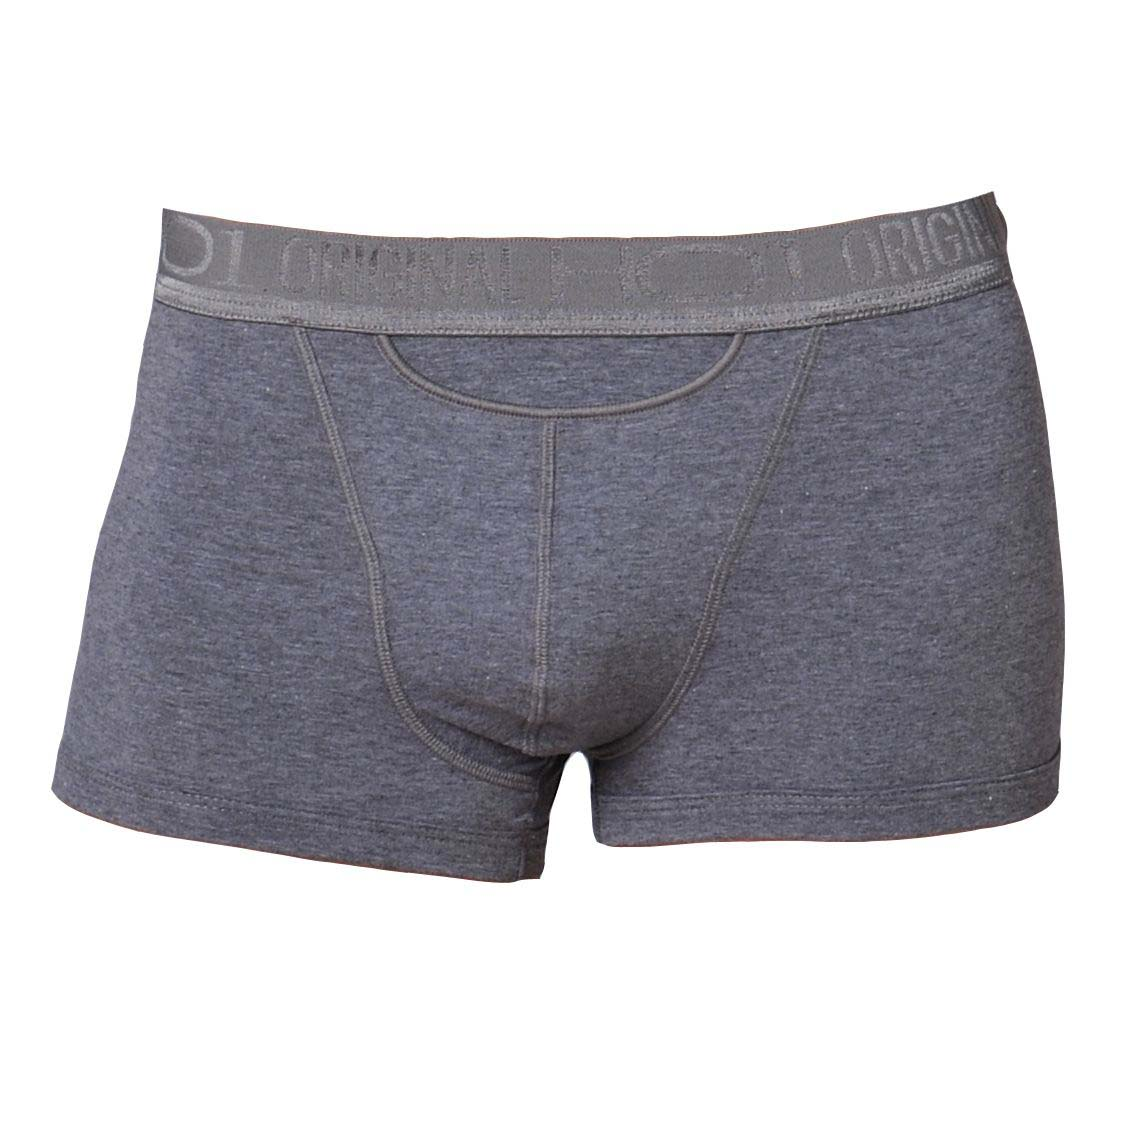 HOM Boxer Brief HO1